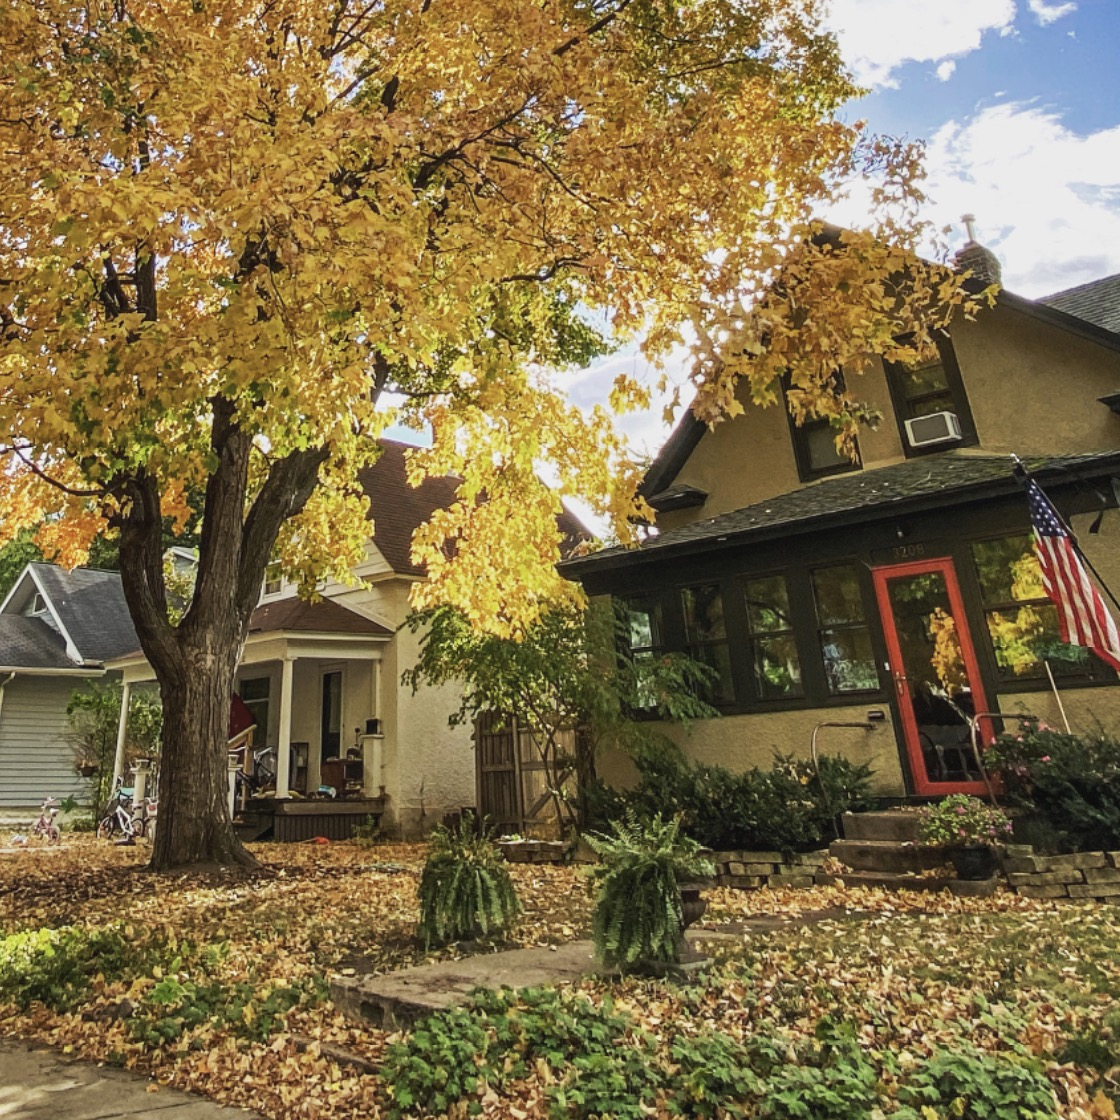 A tree with falling yellow leaves in the front yard of a tan house with brown trim.